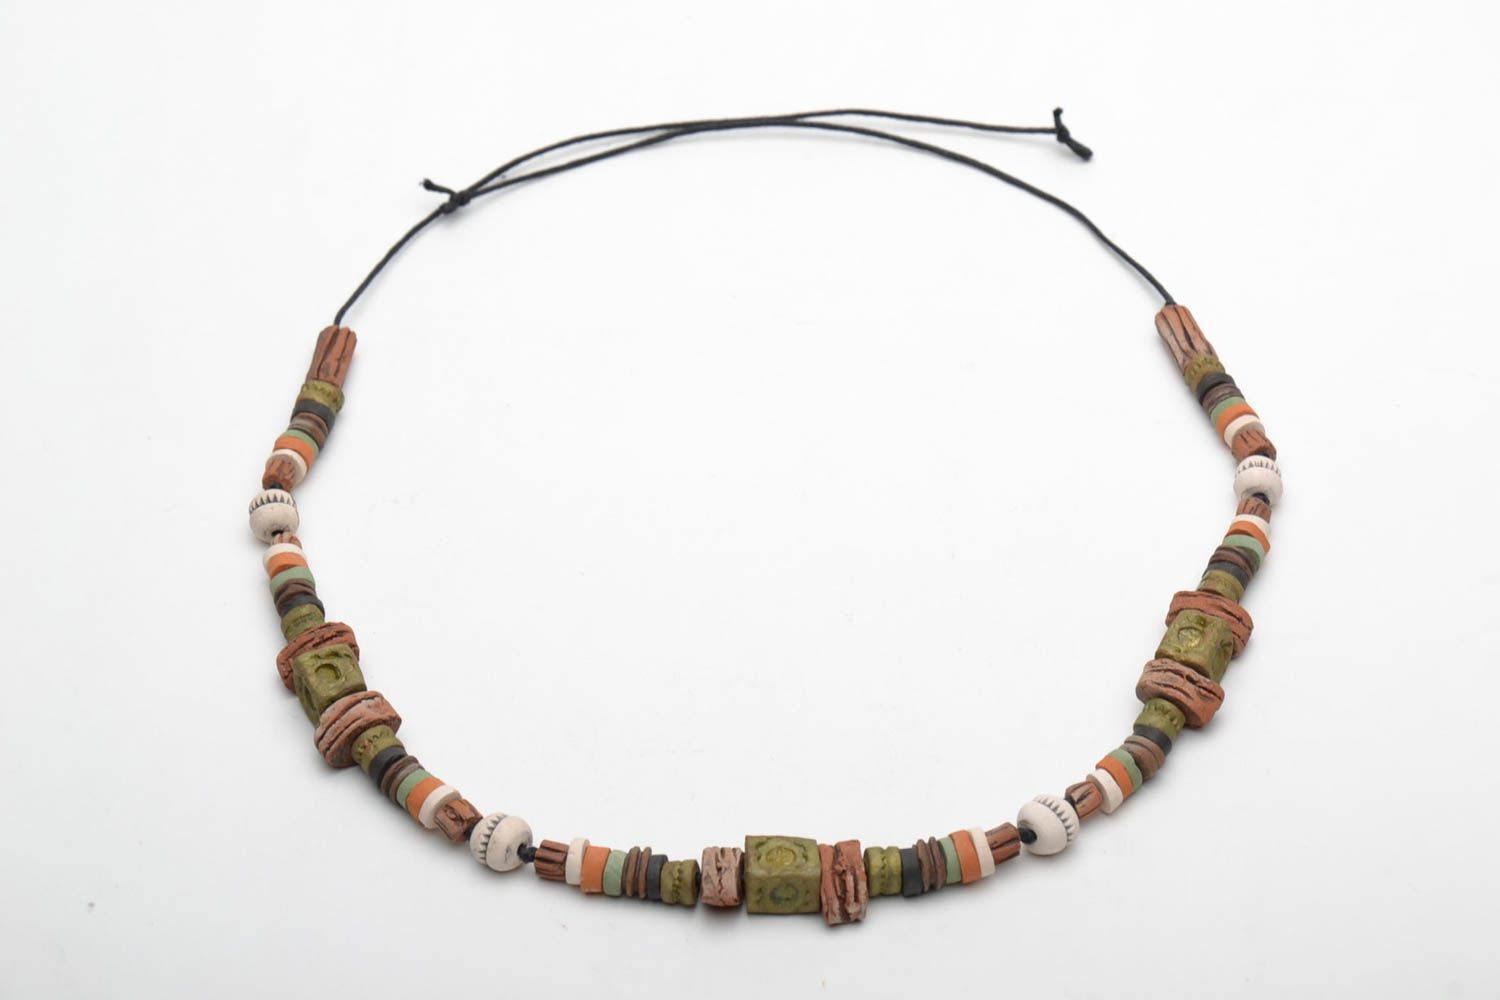 Colorful clay necklace photo 4